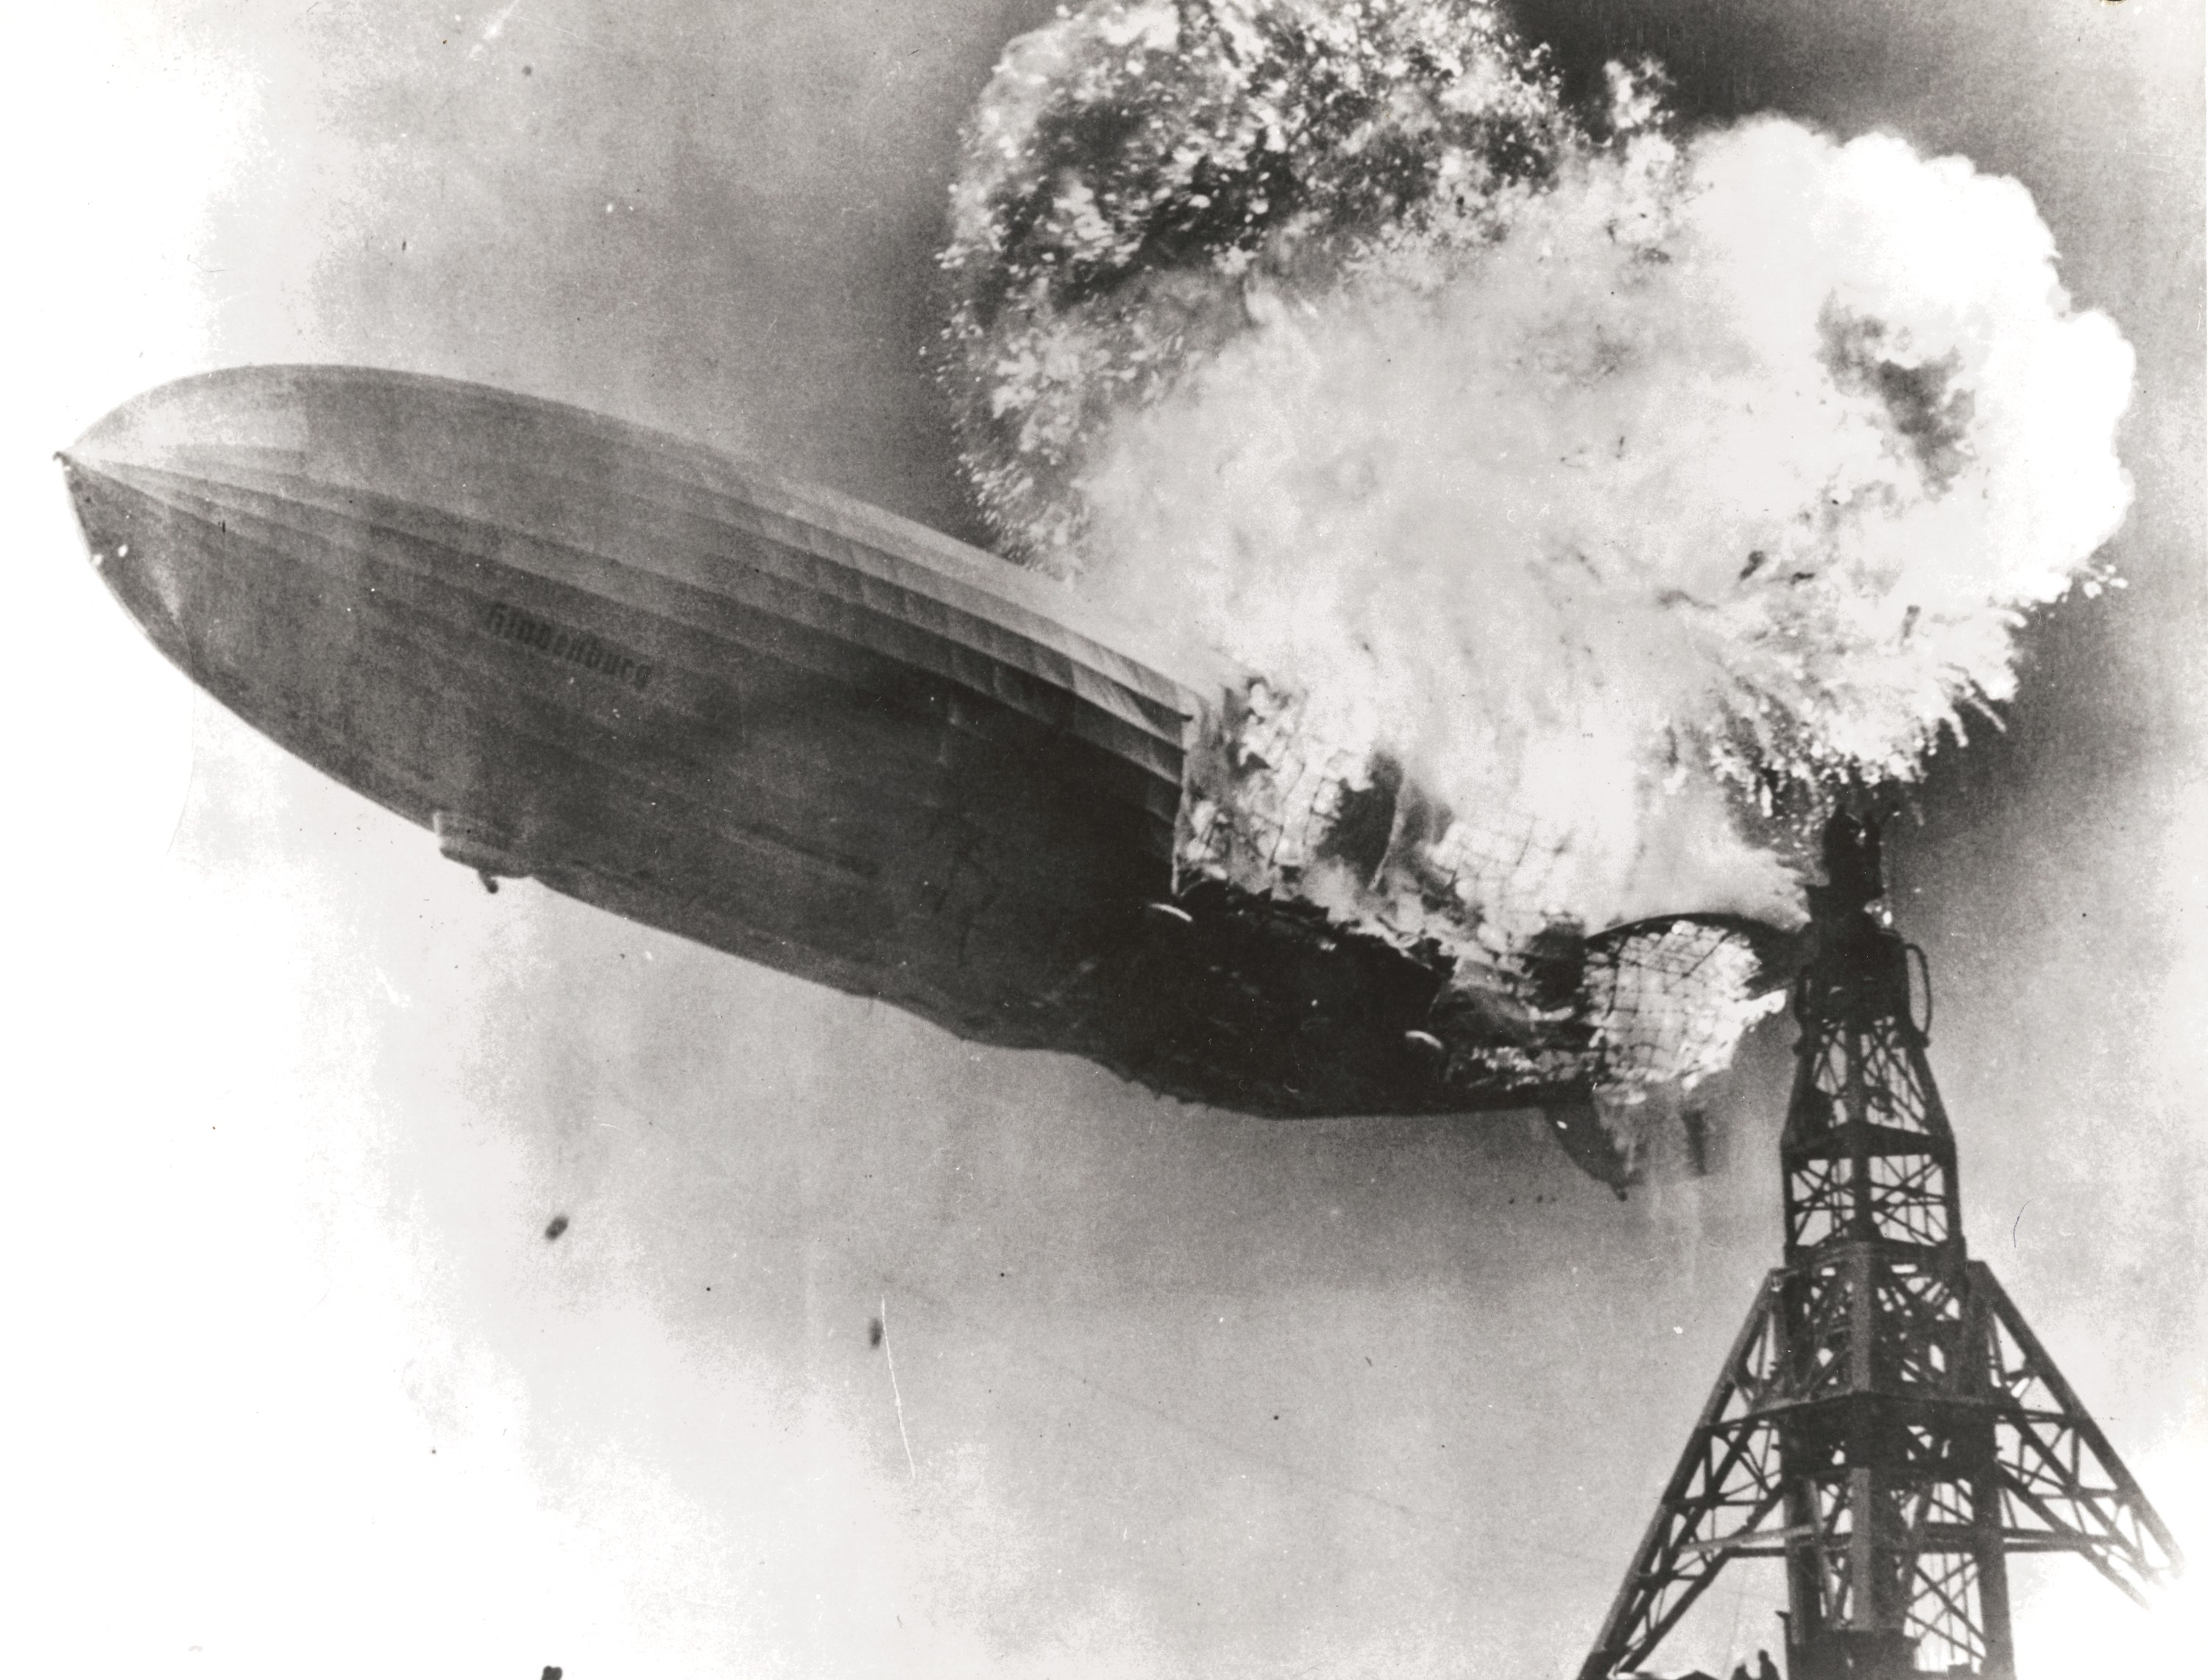 The Hindenburg crashes and burns.